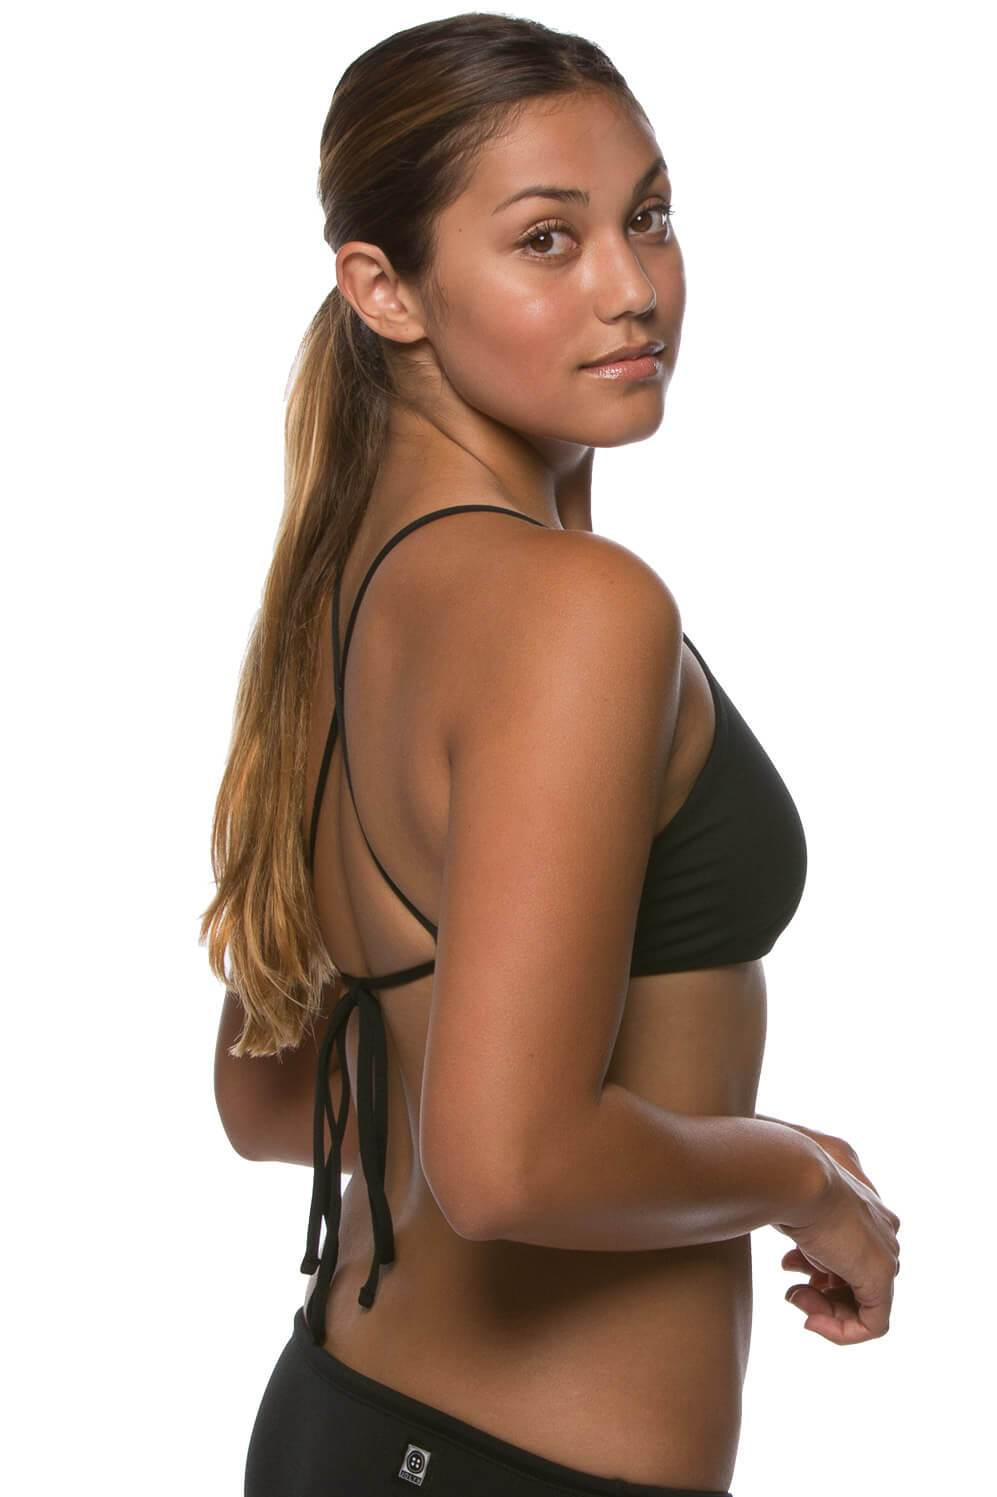 Jones Bikini Top - Black